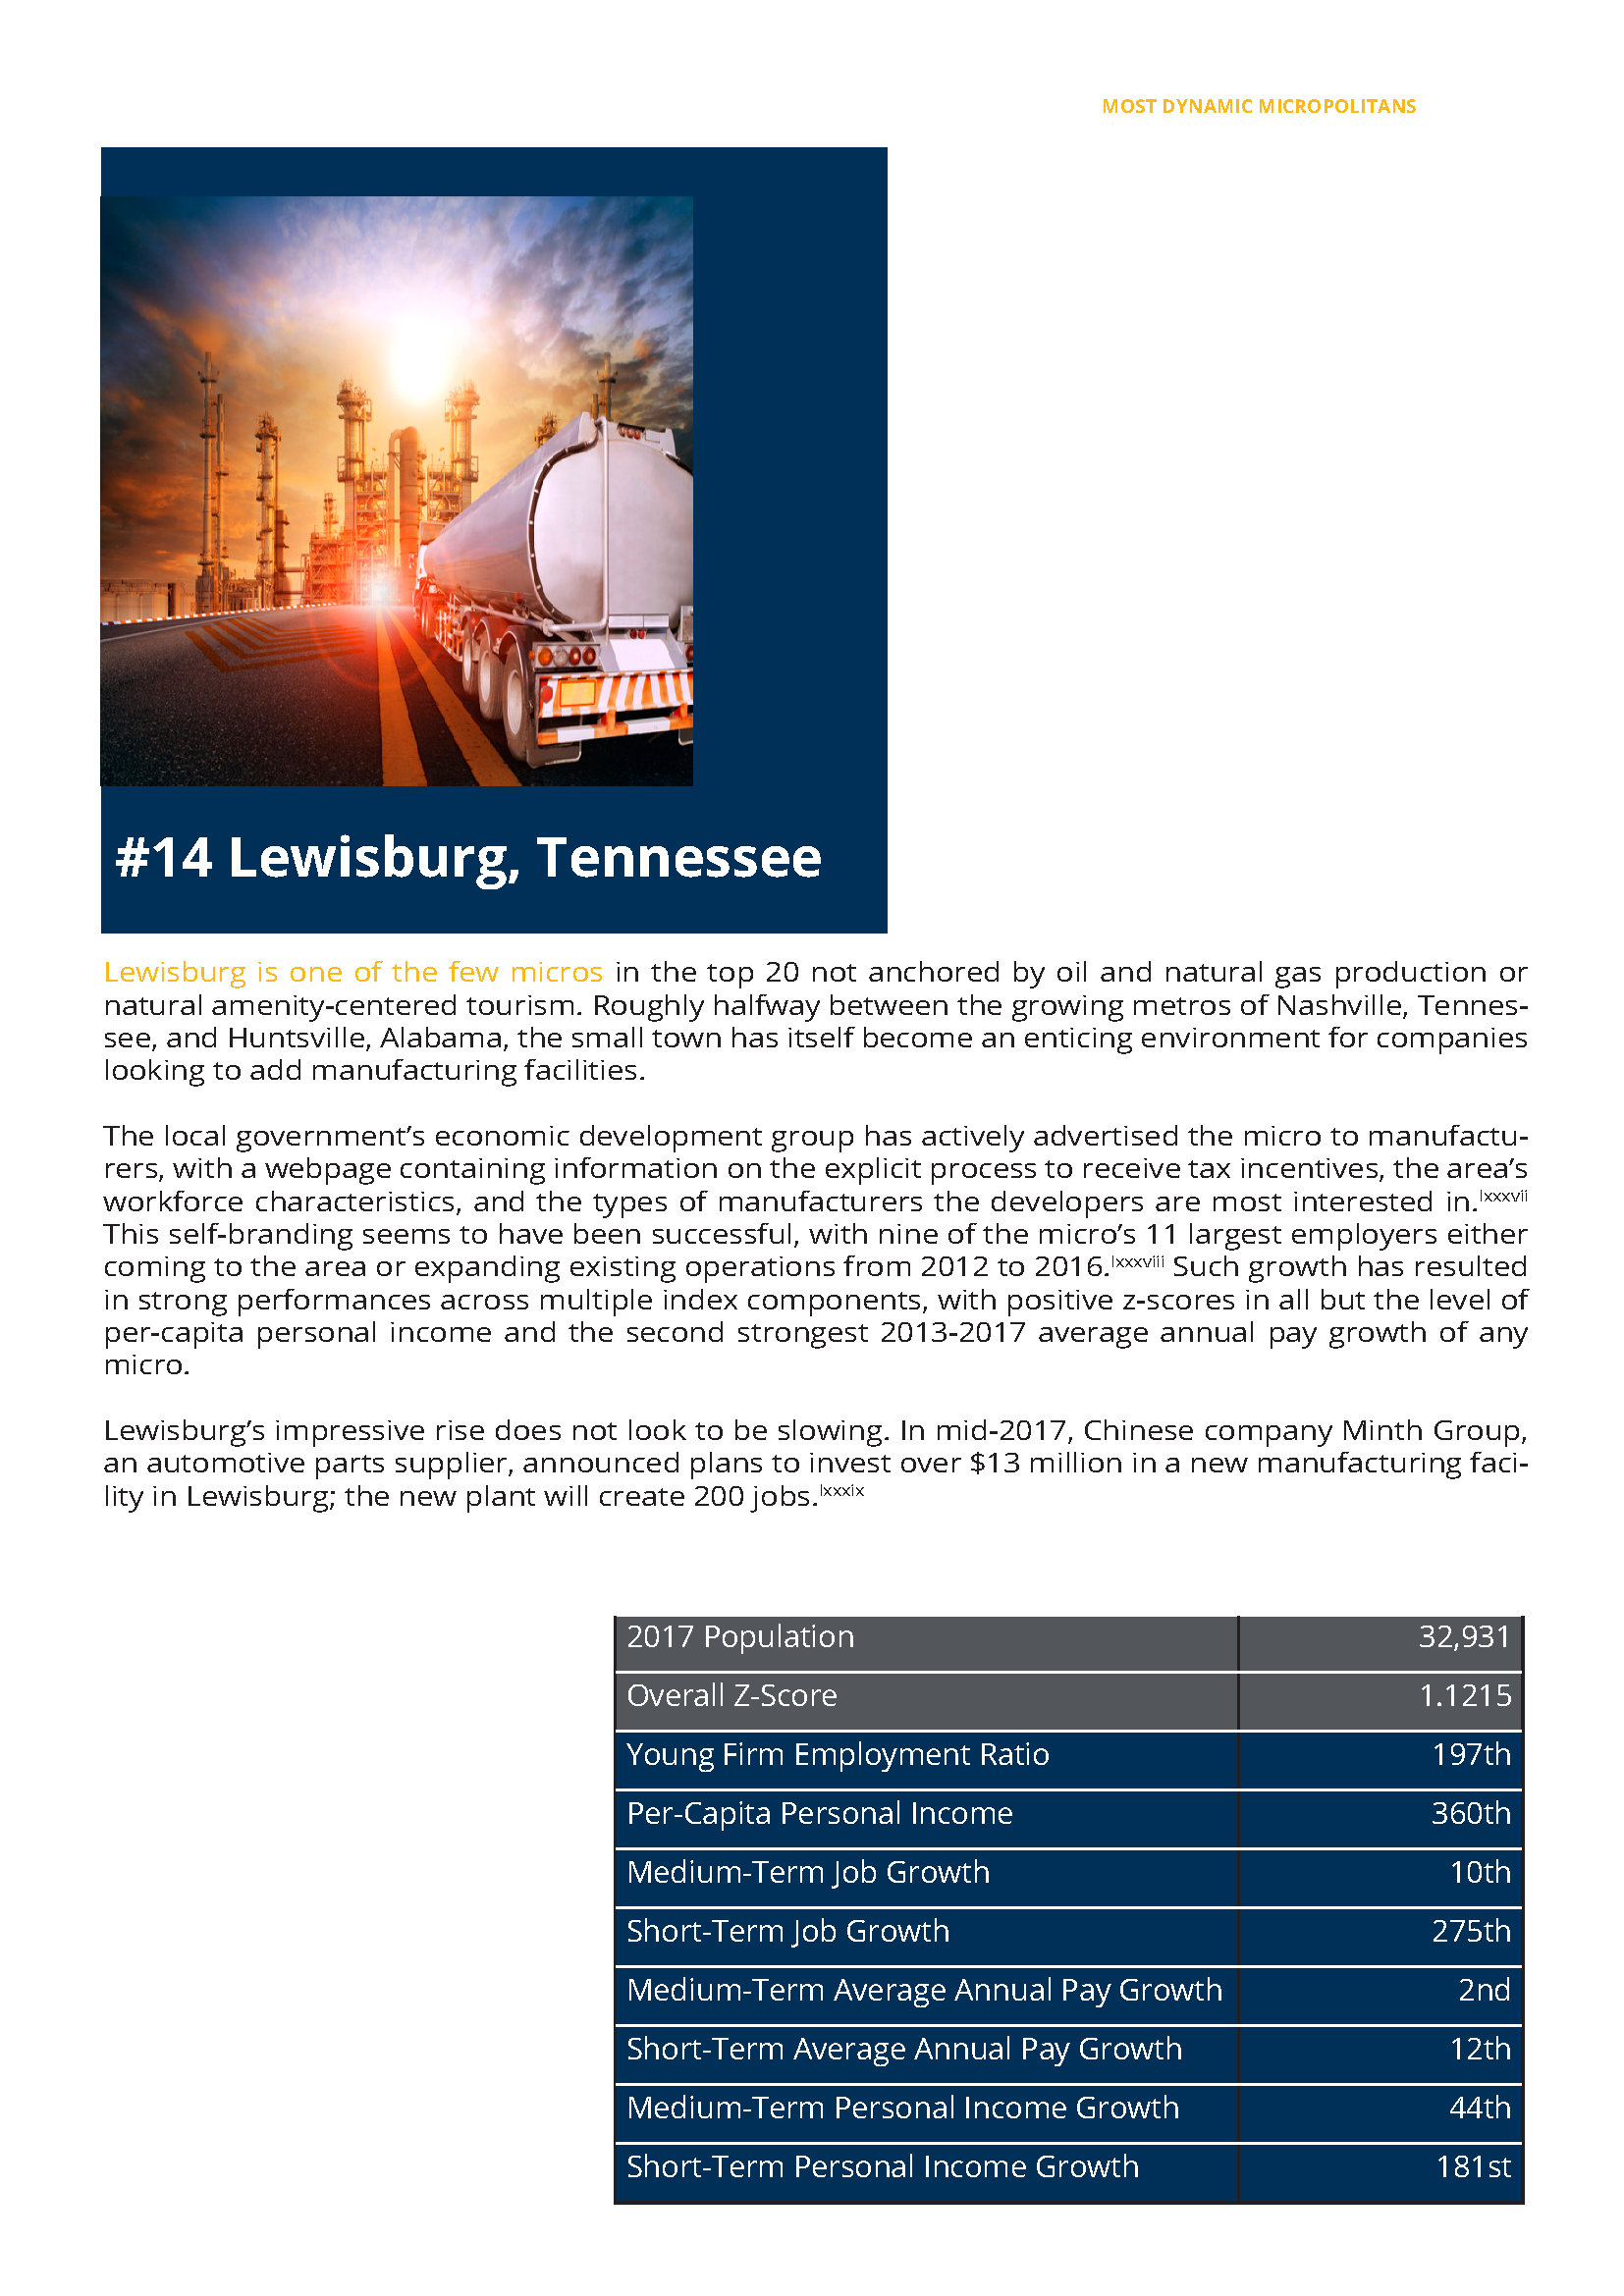 Lewisburg Top 20 Most Dynamic Micropolitan 14 Page 35